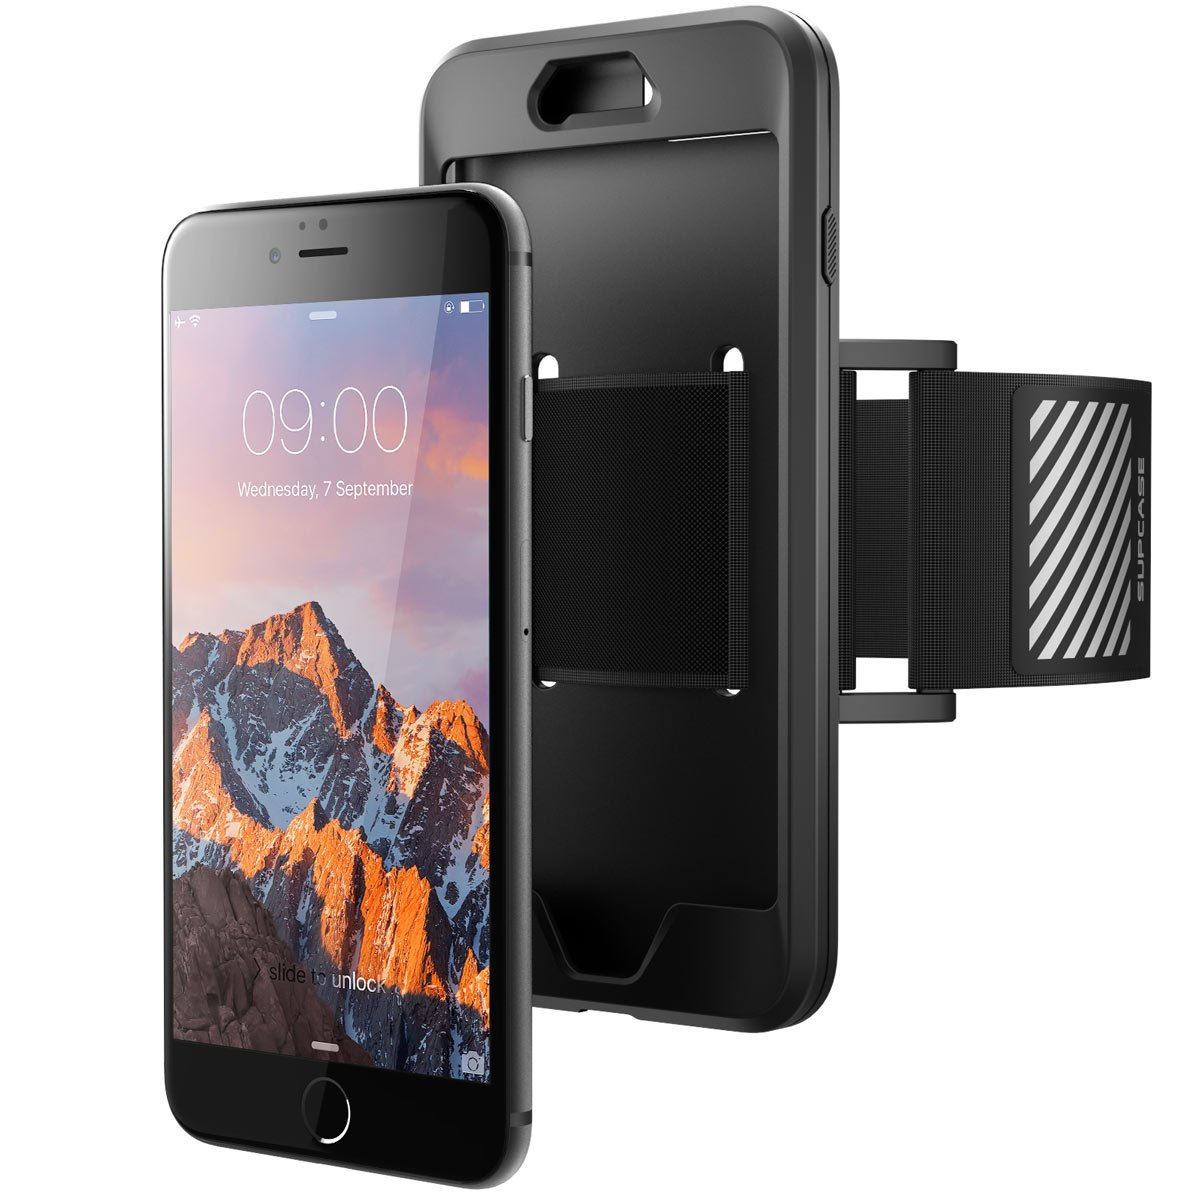 iPhone 7 Plus Armband, iPhone 8 Plus Armband, SUPCASE Easy Fitting Sport Running Armband Case with Premium Flexible Case Combo for Apple iPhone 7 Plus 2016 / iPhone 8 Plus 2017 (Black) by SUPCASE (Image #5)